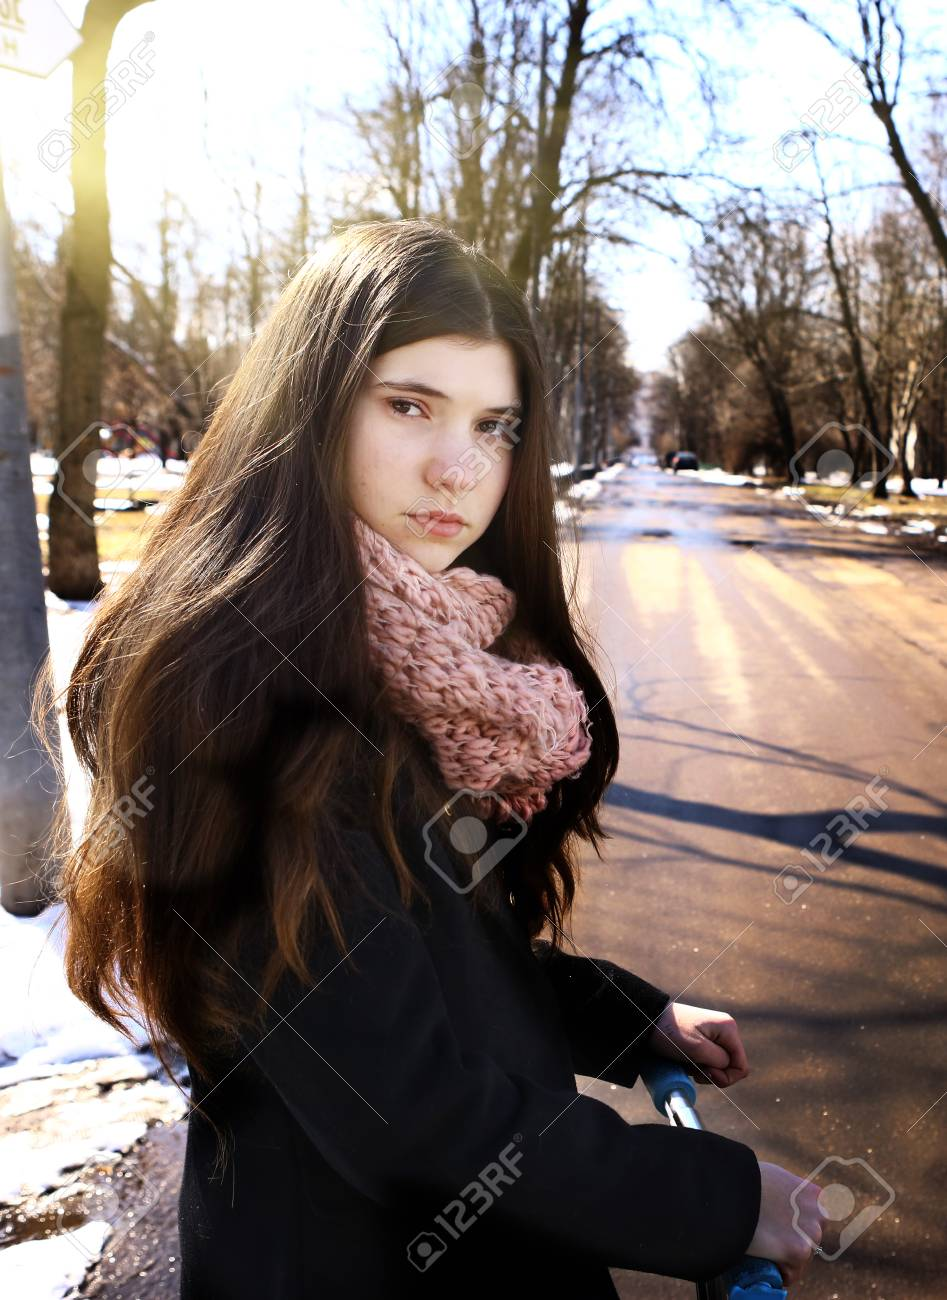 c9f96ca4c3f8 Stock Photo - teen girl in black coat and long brown hair with schooter